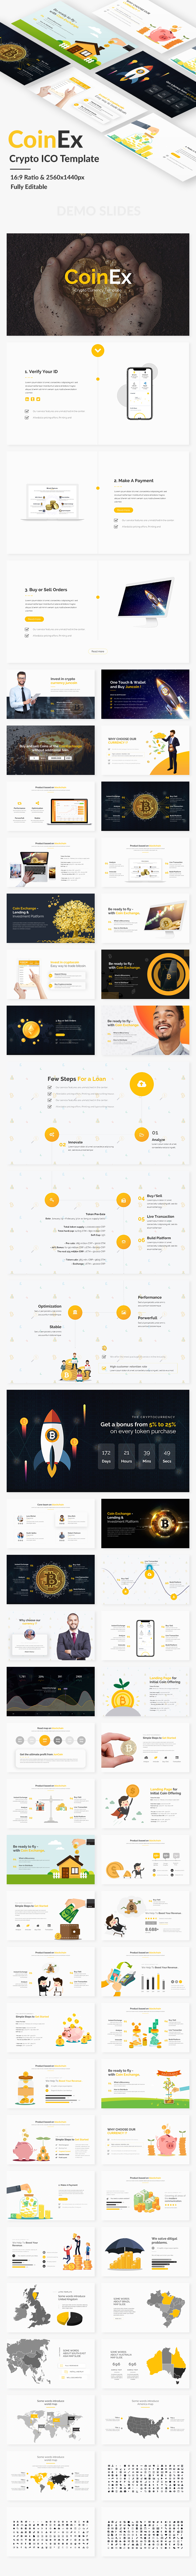 Coin exchange and crypto currency powerpoint template by bypaintdesign coin exchange and crypto currency powerpoint template creative powerpoint templates toneelgroepblik Images